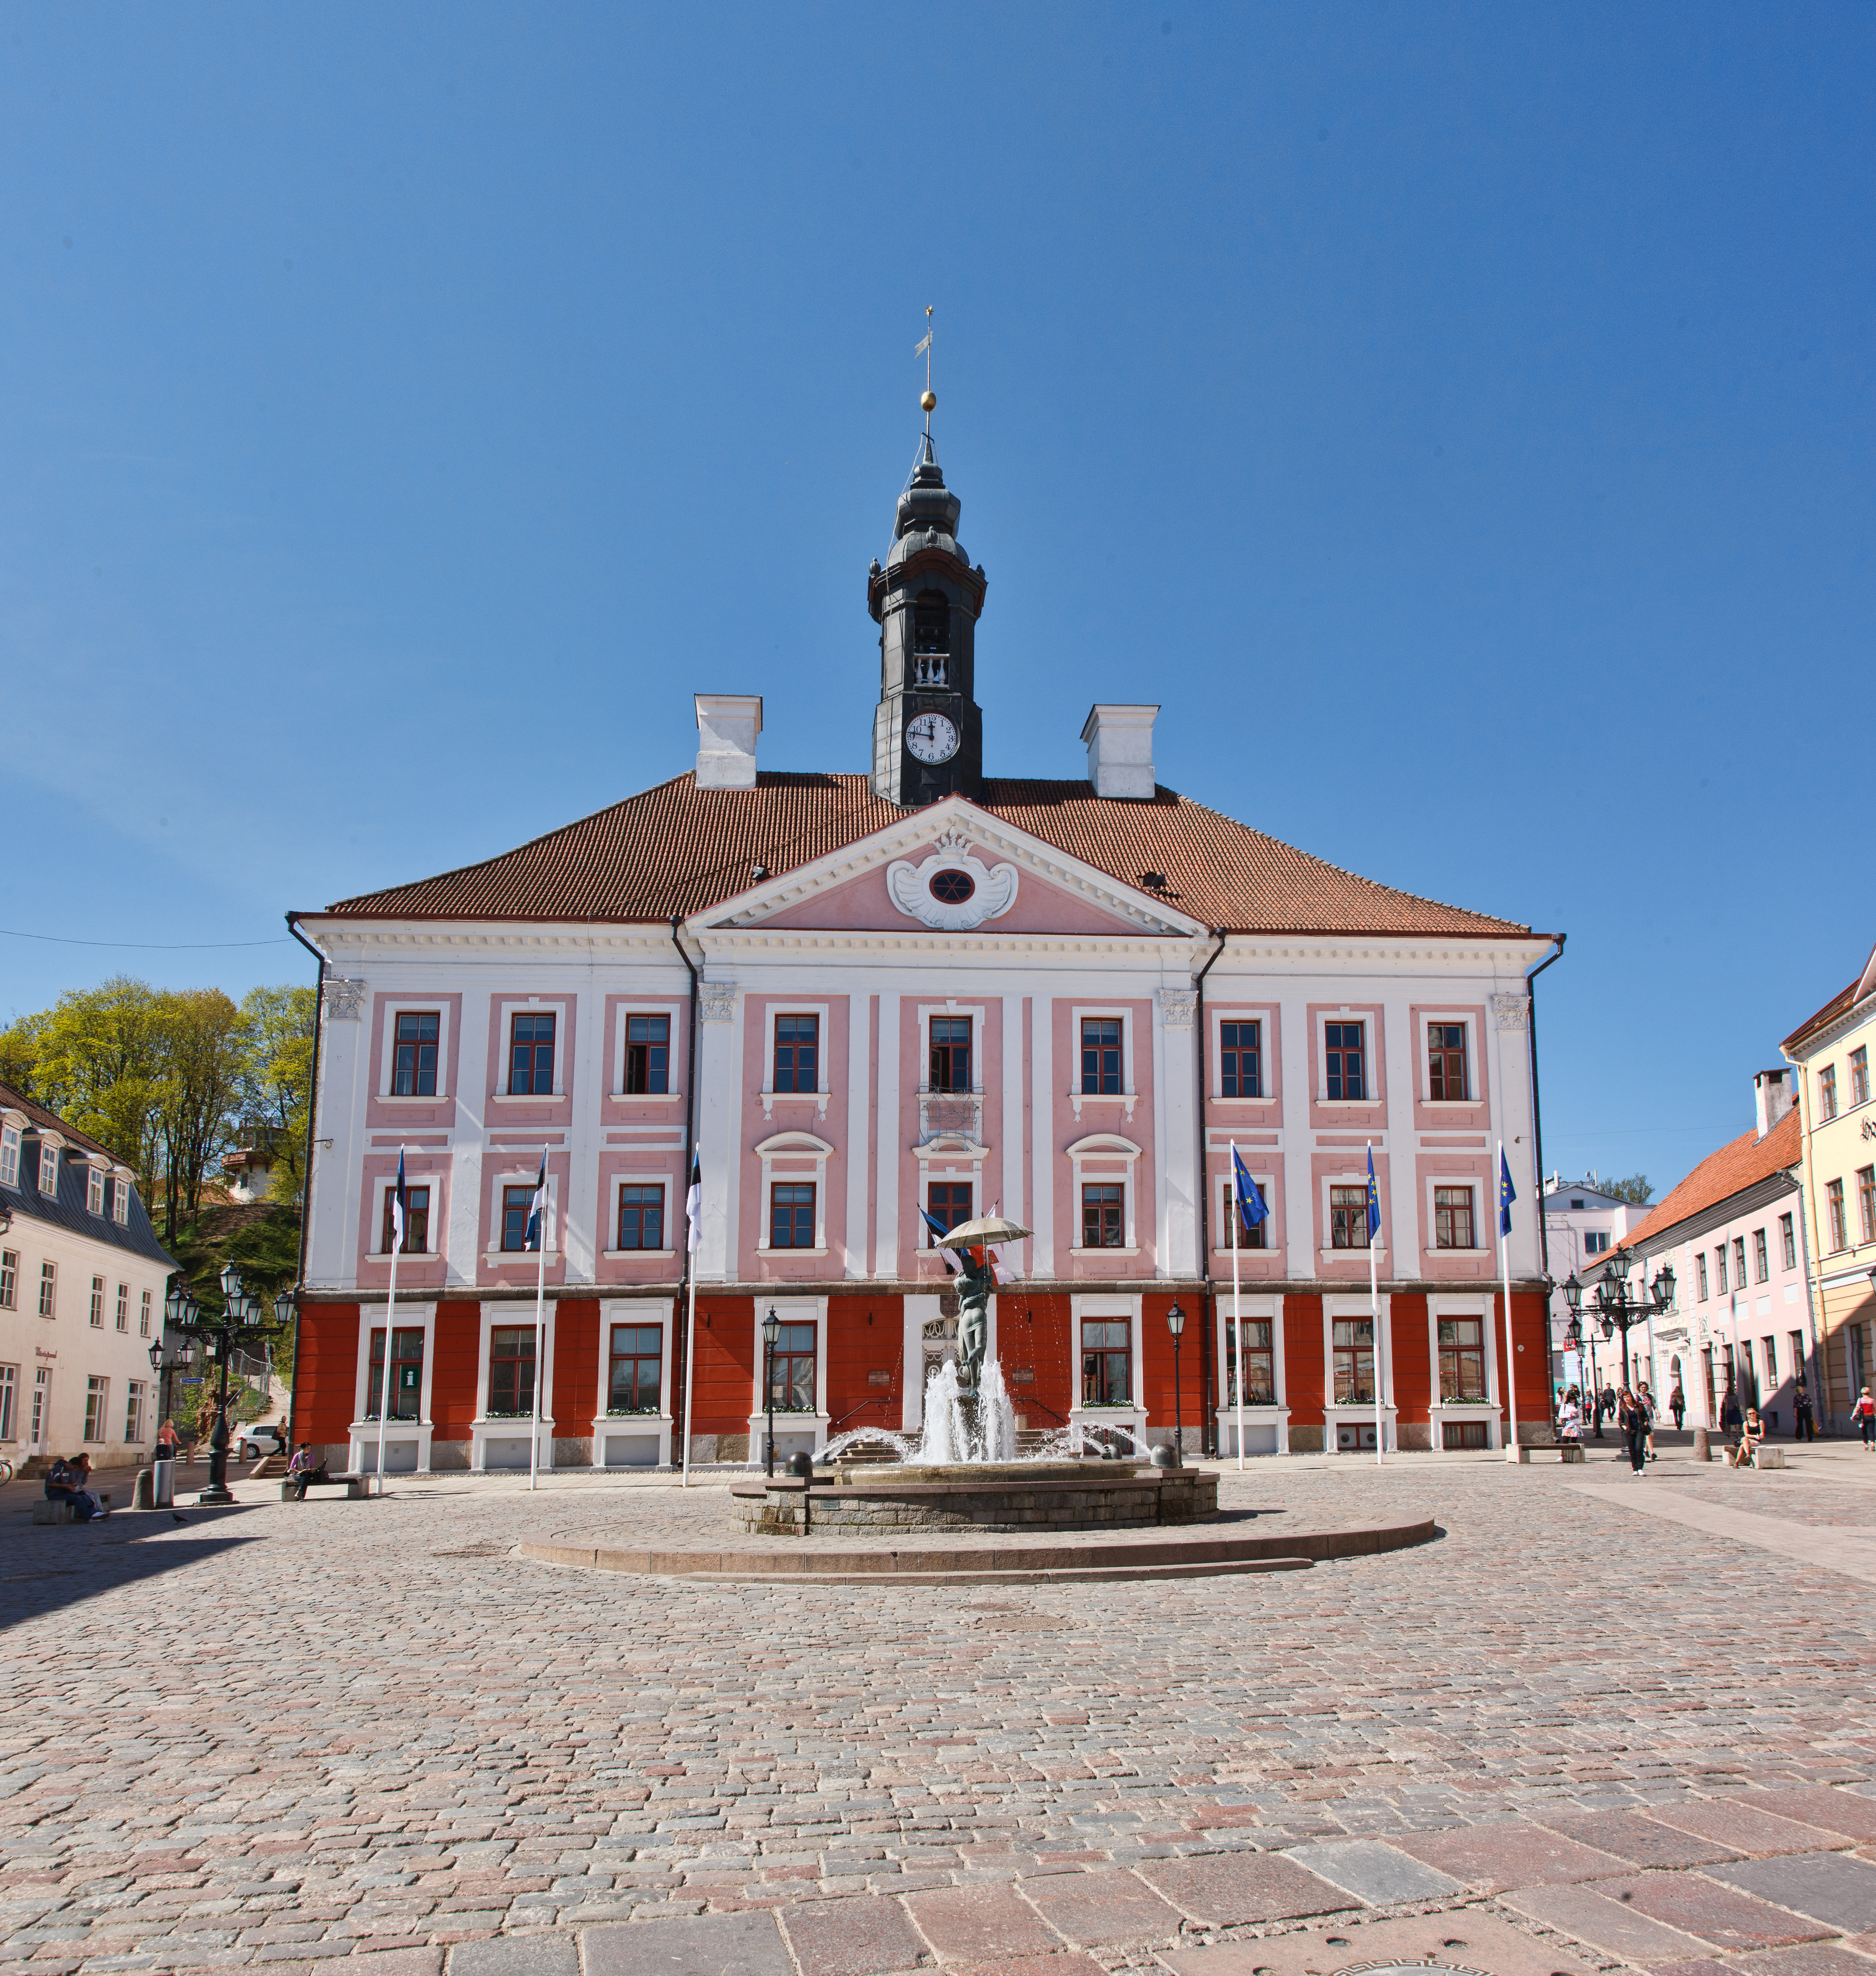 Town square. Photo by Andres Tennus